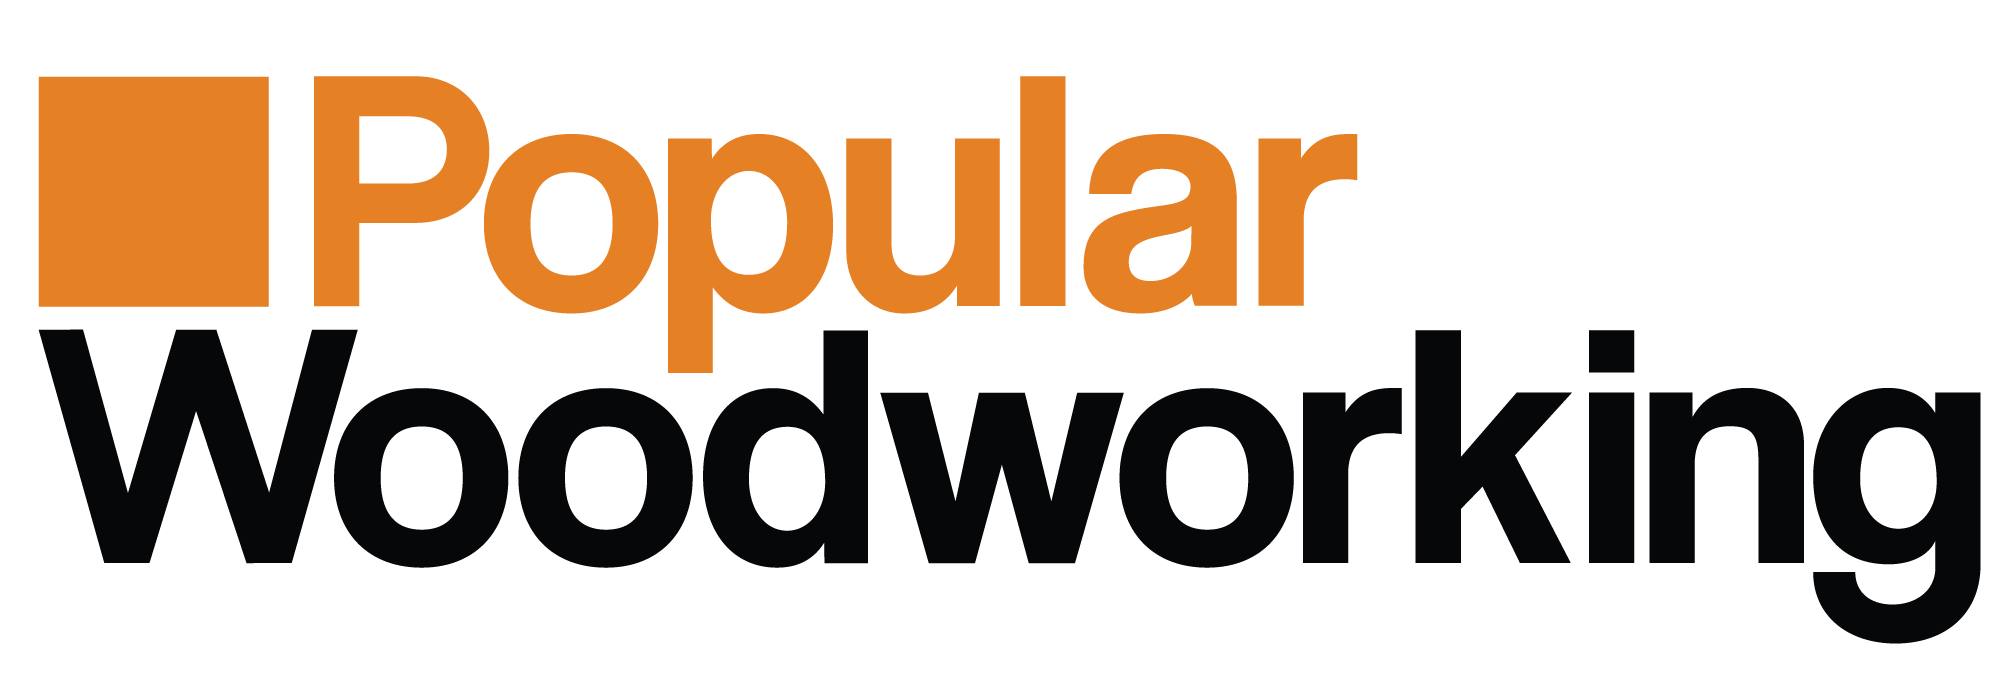 Popular Woodworking Logo